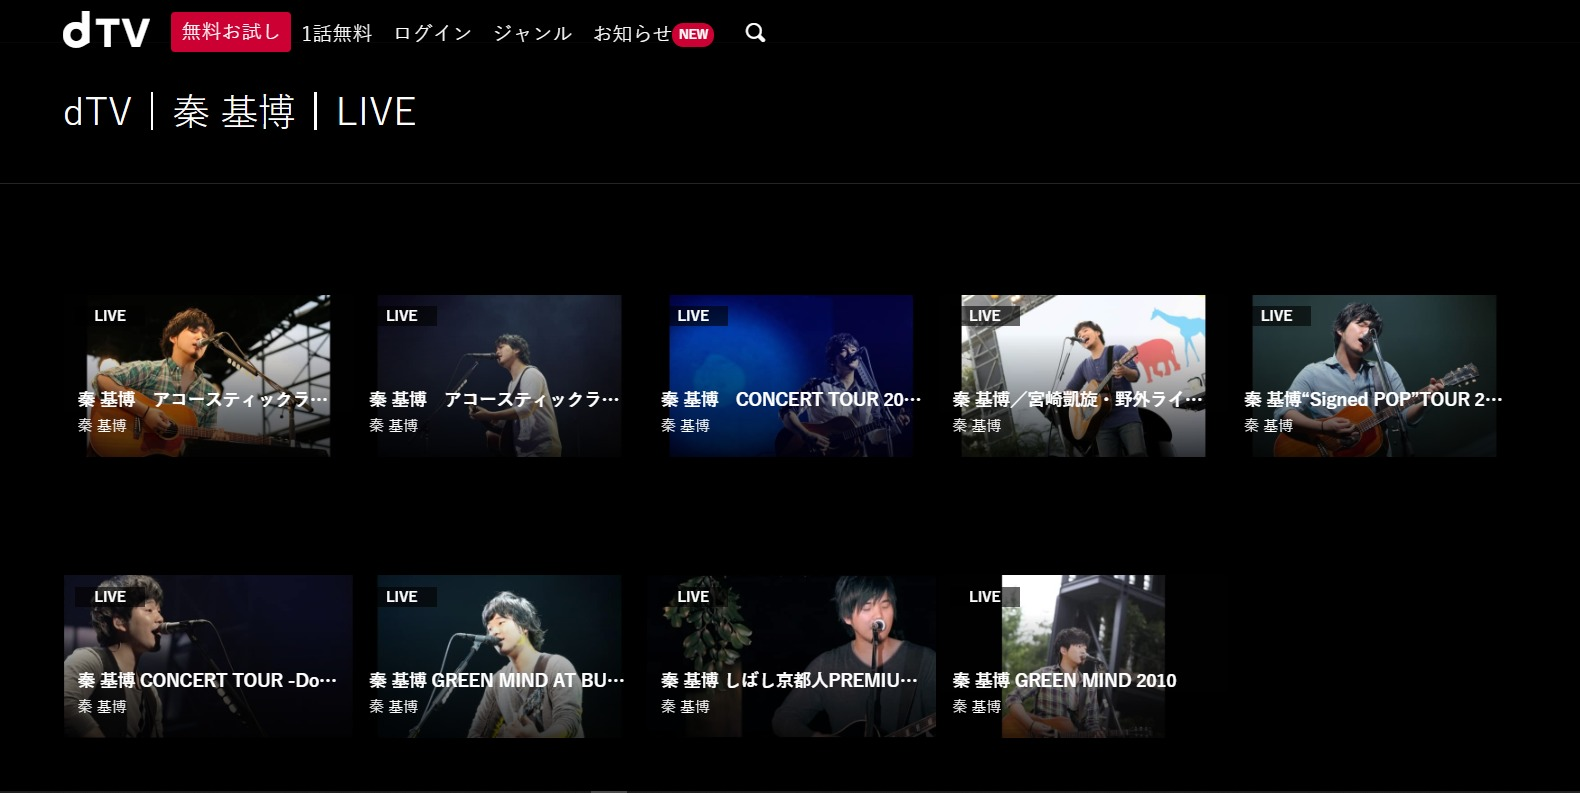 dTVの秦基博ライブ映像一覧